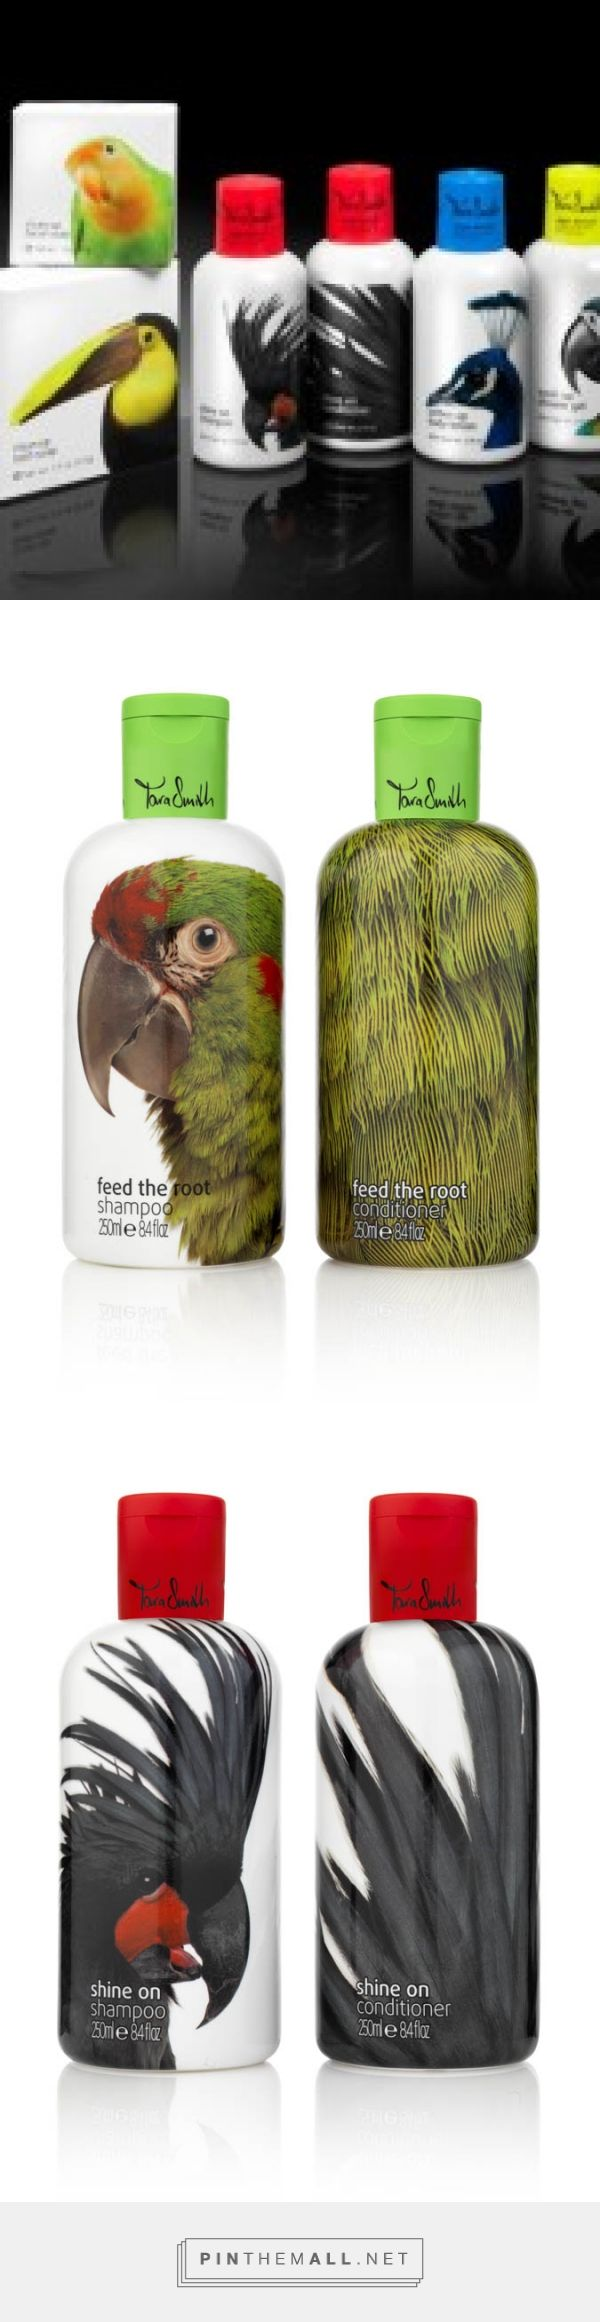 Tara Smith vegan hair products via mummyliciousbeauty curated by Packaging Diva PD. Sex and the City stylist Tara Smith cleverly designed colorful packaging.